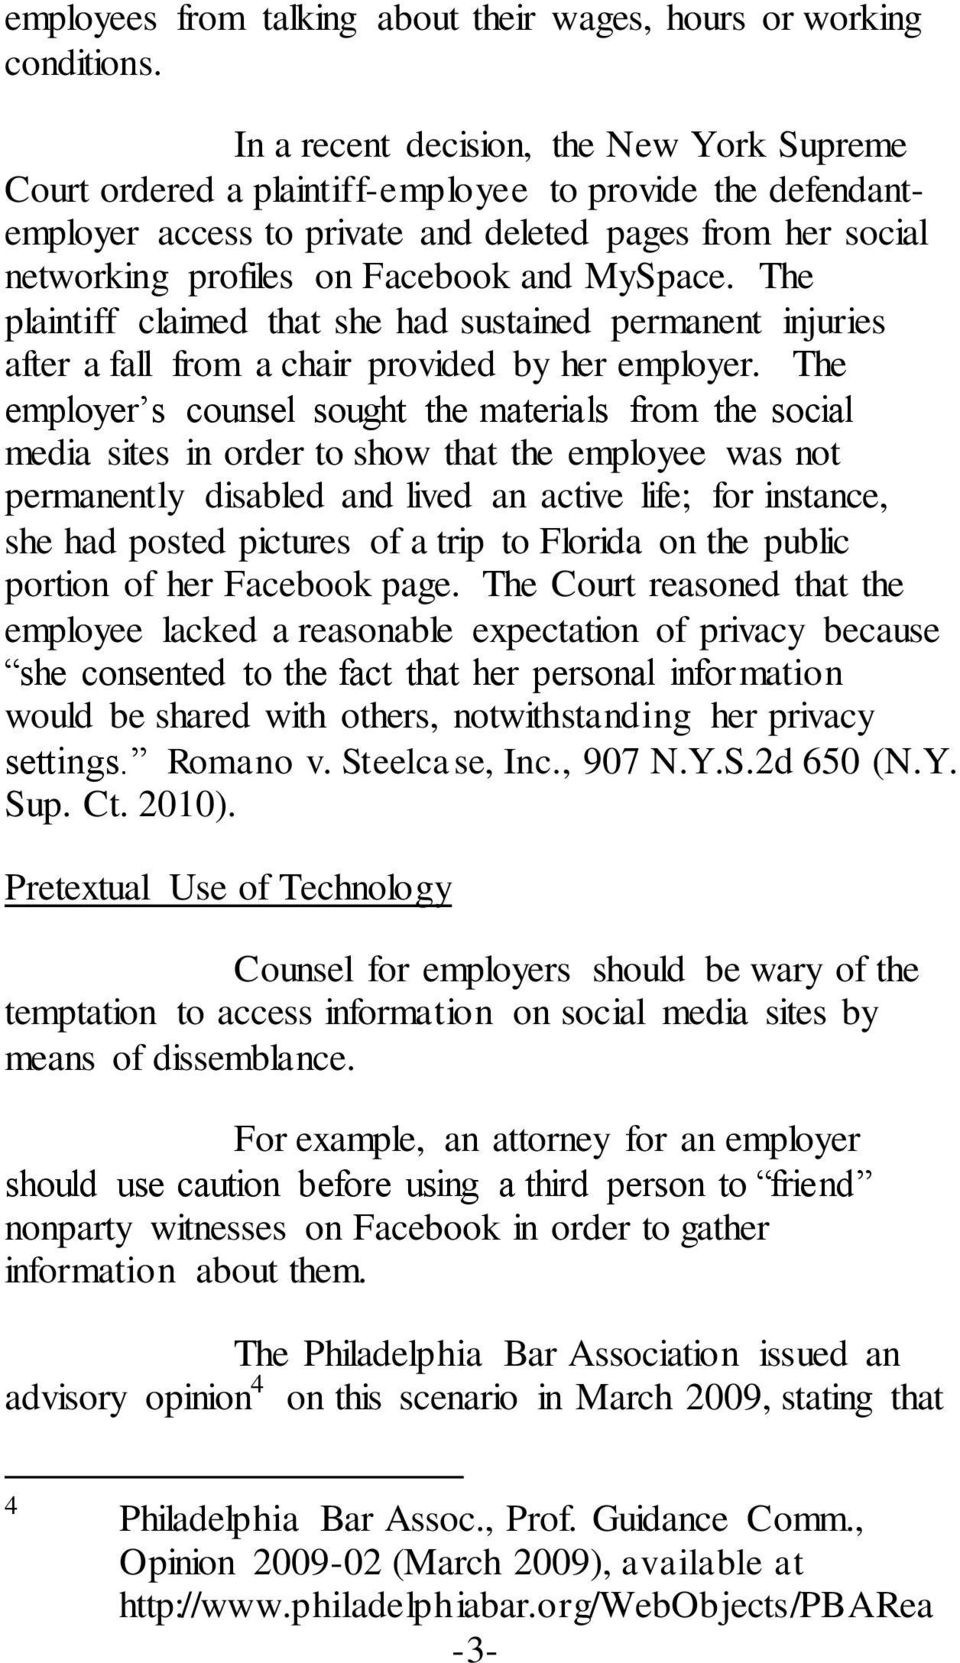 MySpace. The plaintiff claimed that she had sustained permanent injuries after a fall from a chair provided by her employer.